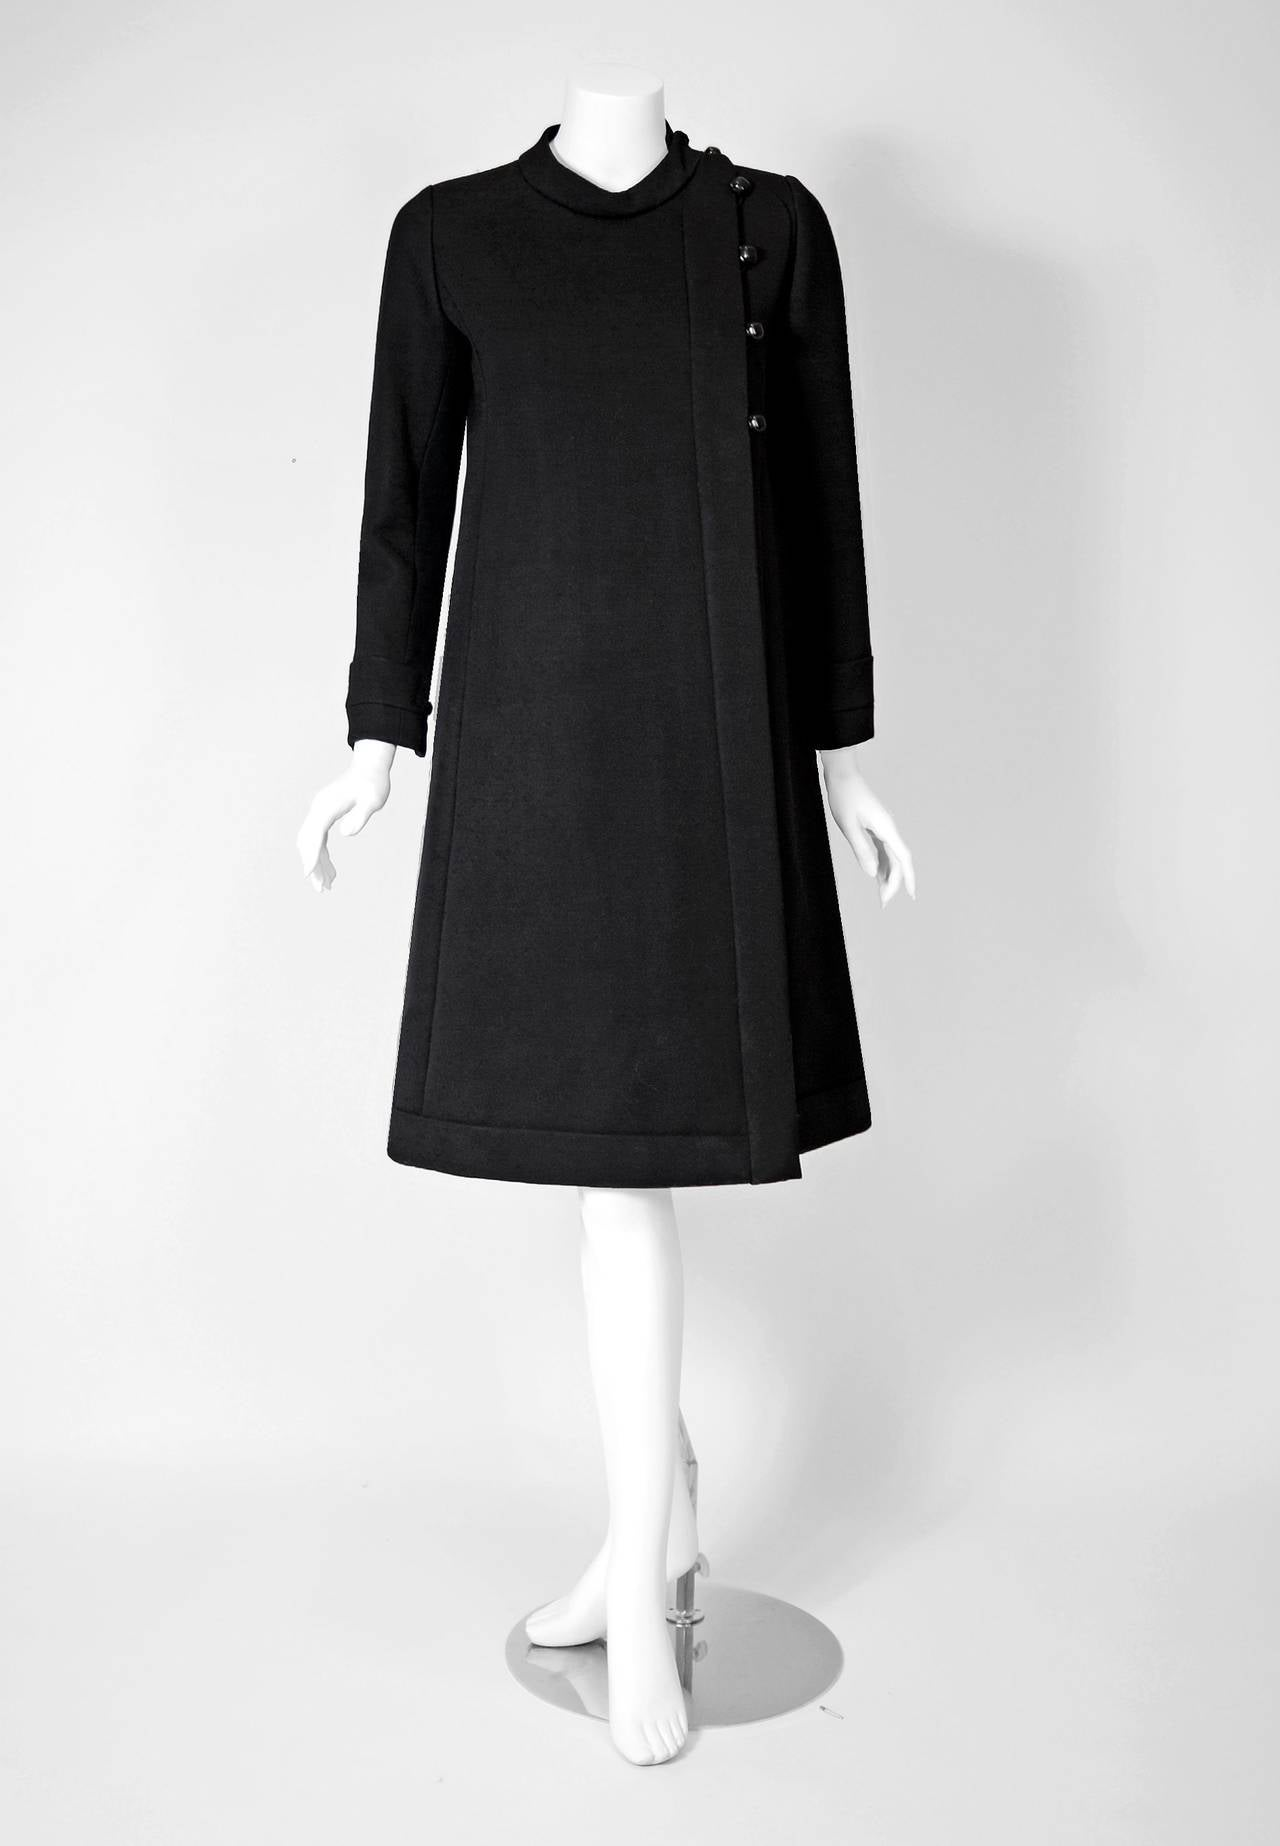 1960's Ronald Amey Black Tailored Silk-Twill Mod Space-Age Cocktail Dress & Coat 3